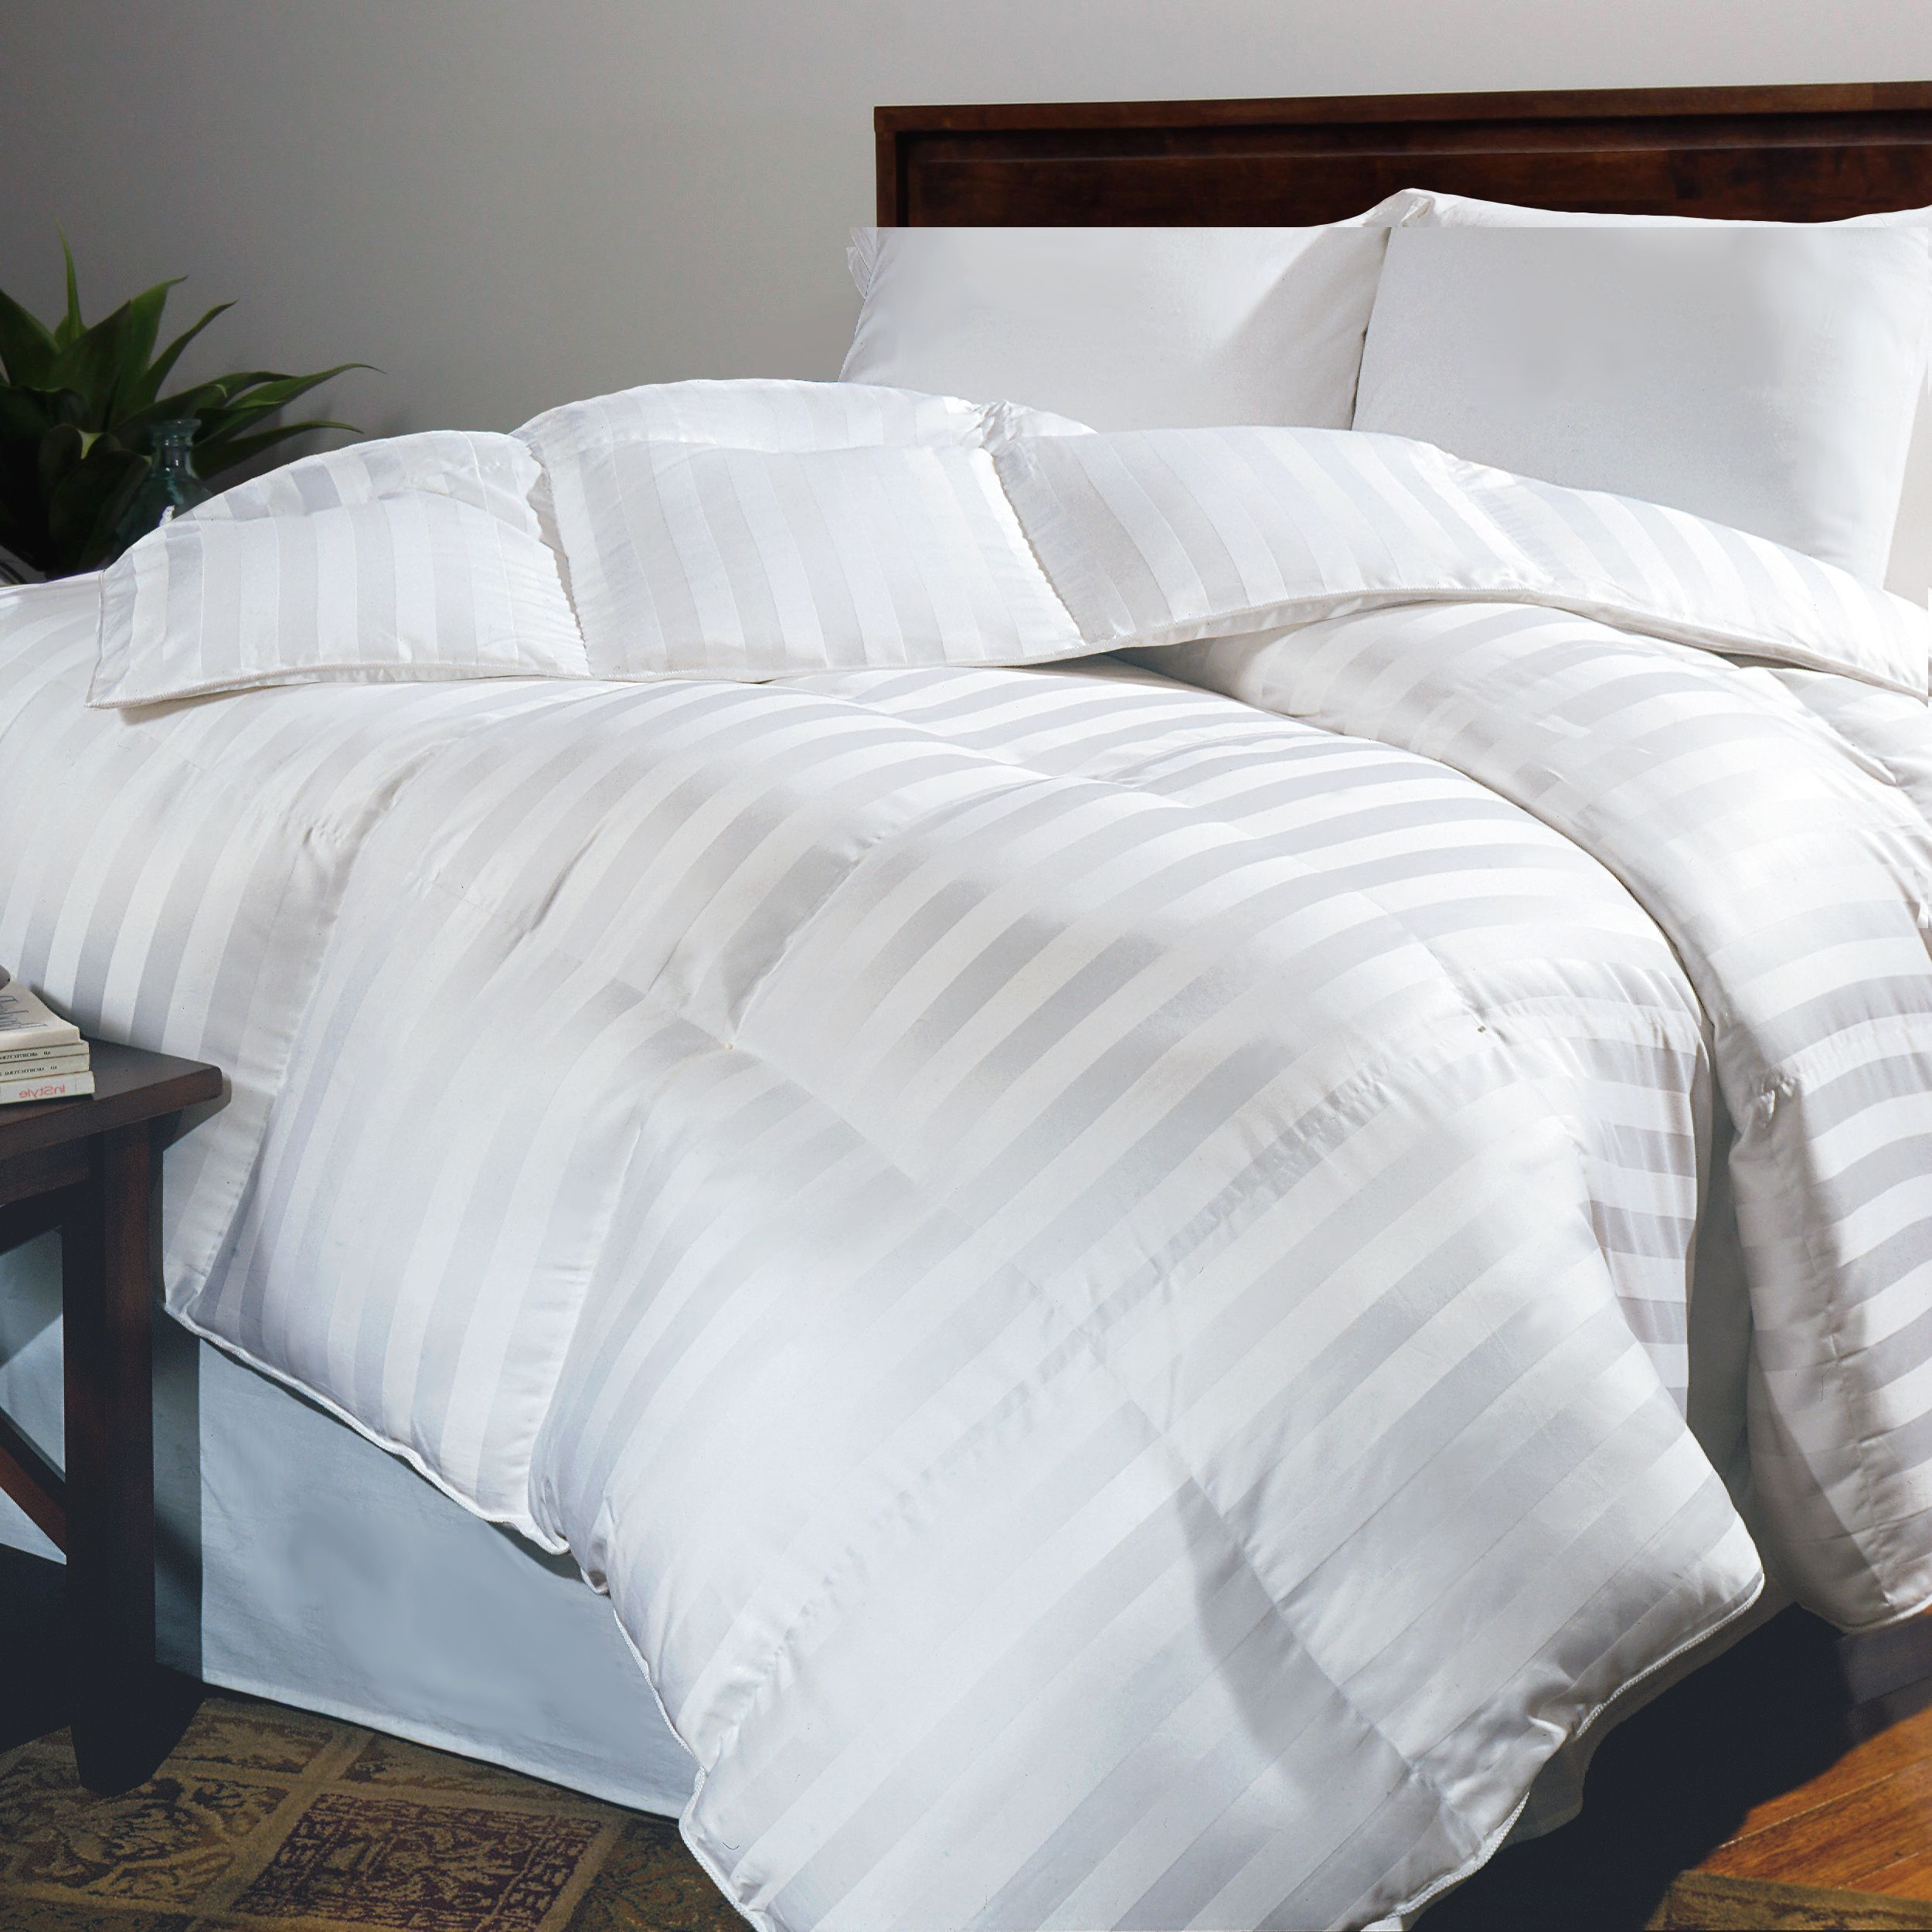 Hotel Grand Oversized 500 Thread Count Extra Warmth Siberian White